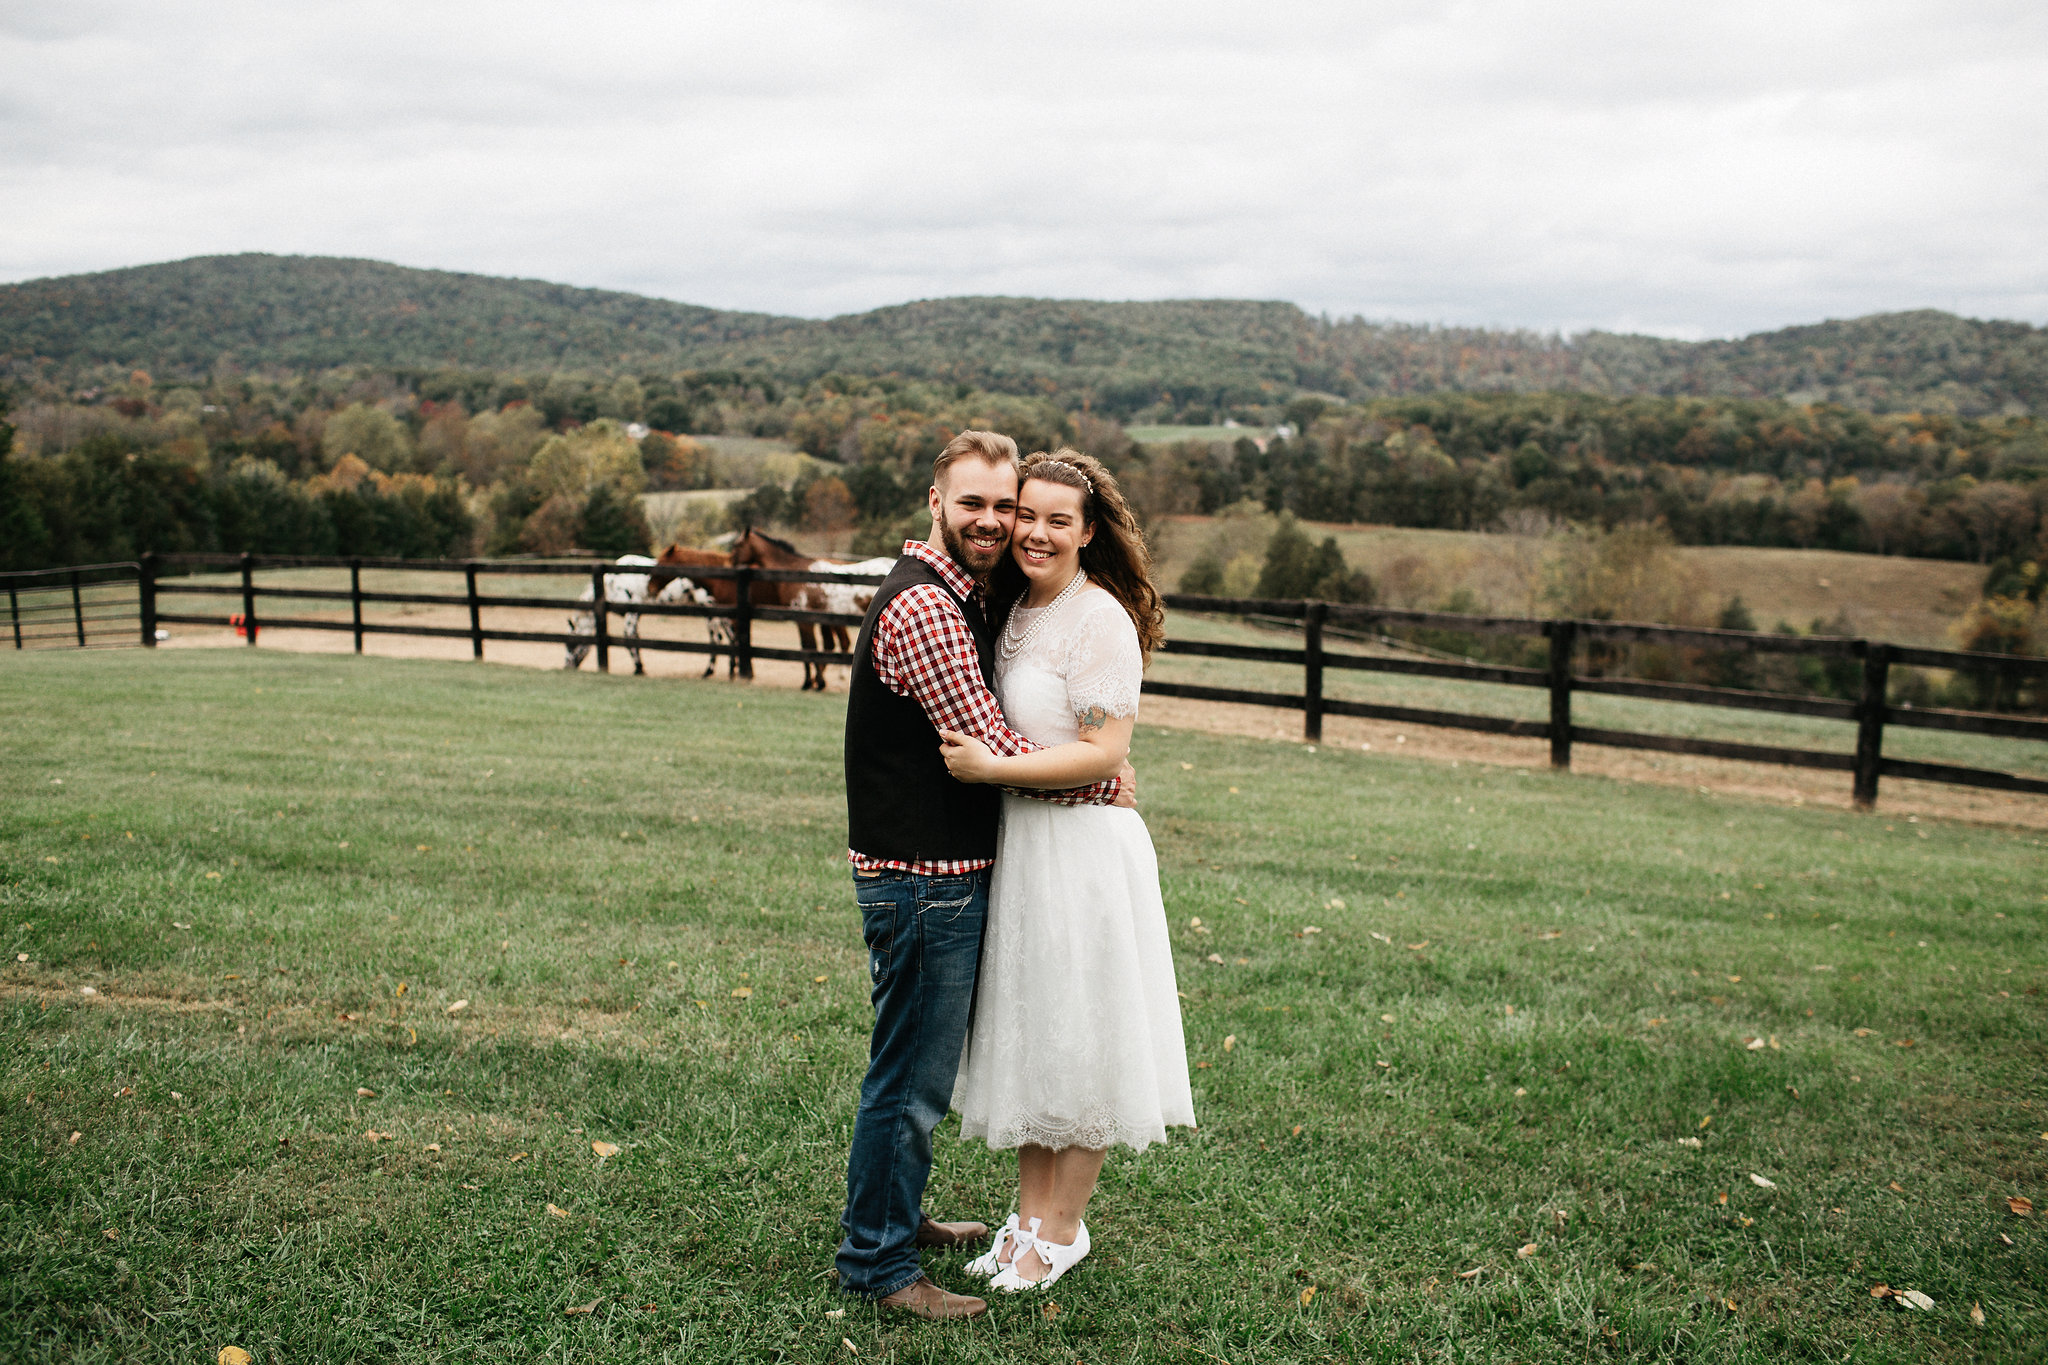 Caitlin&CodyMarried2017-11-03at19.19.40PM10.jpg